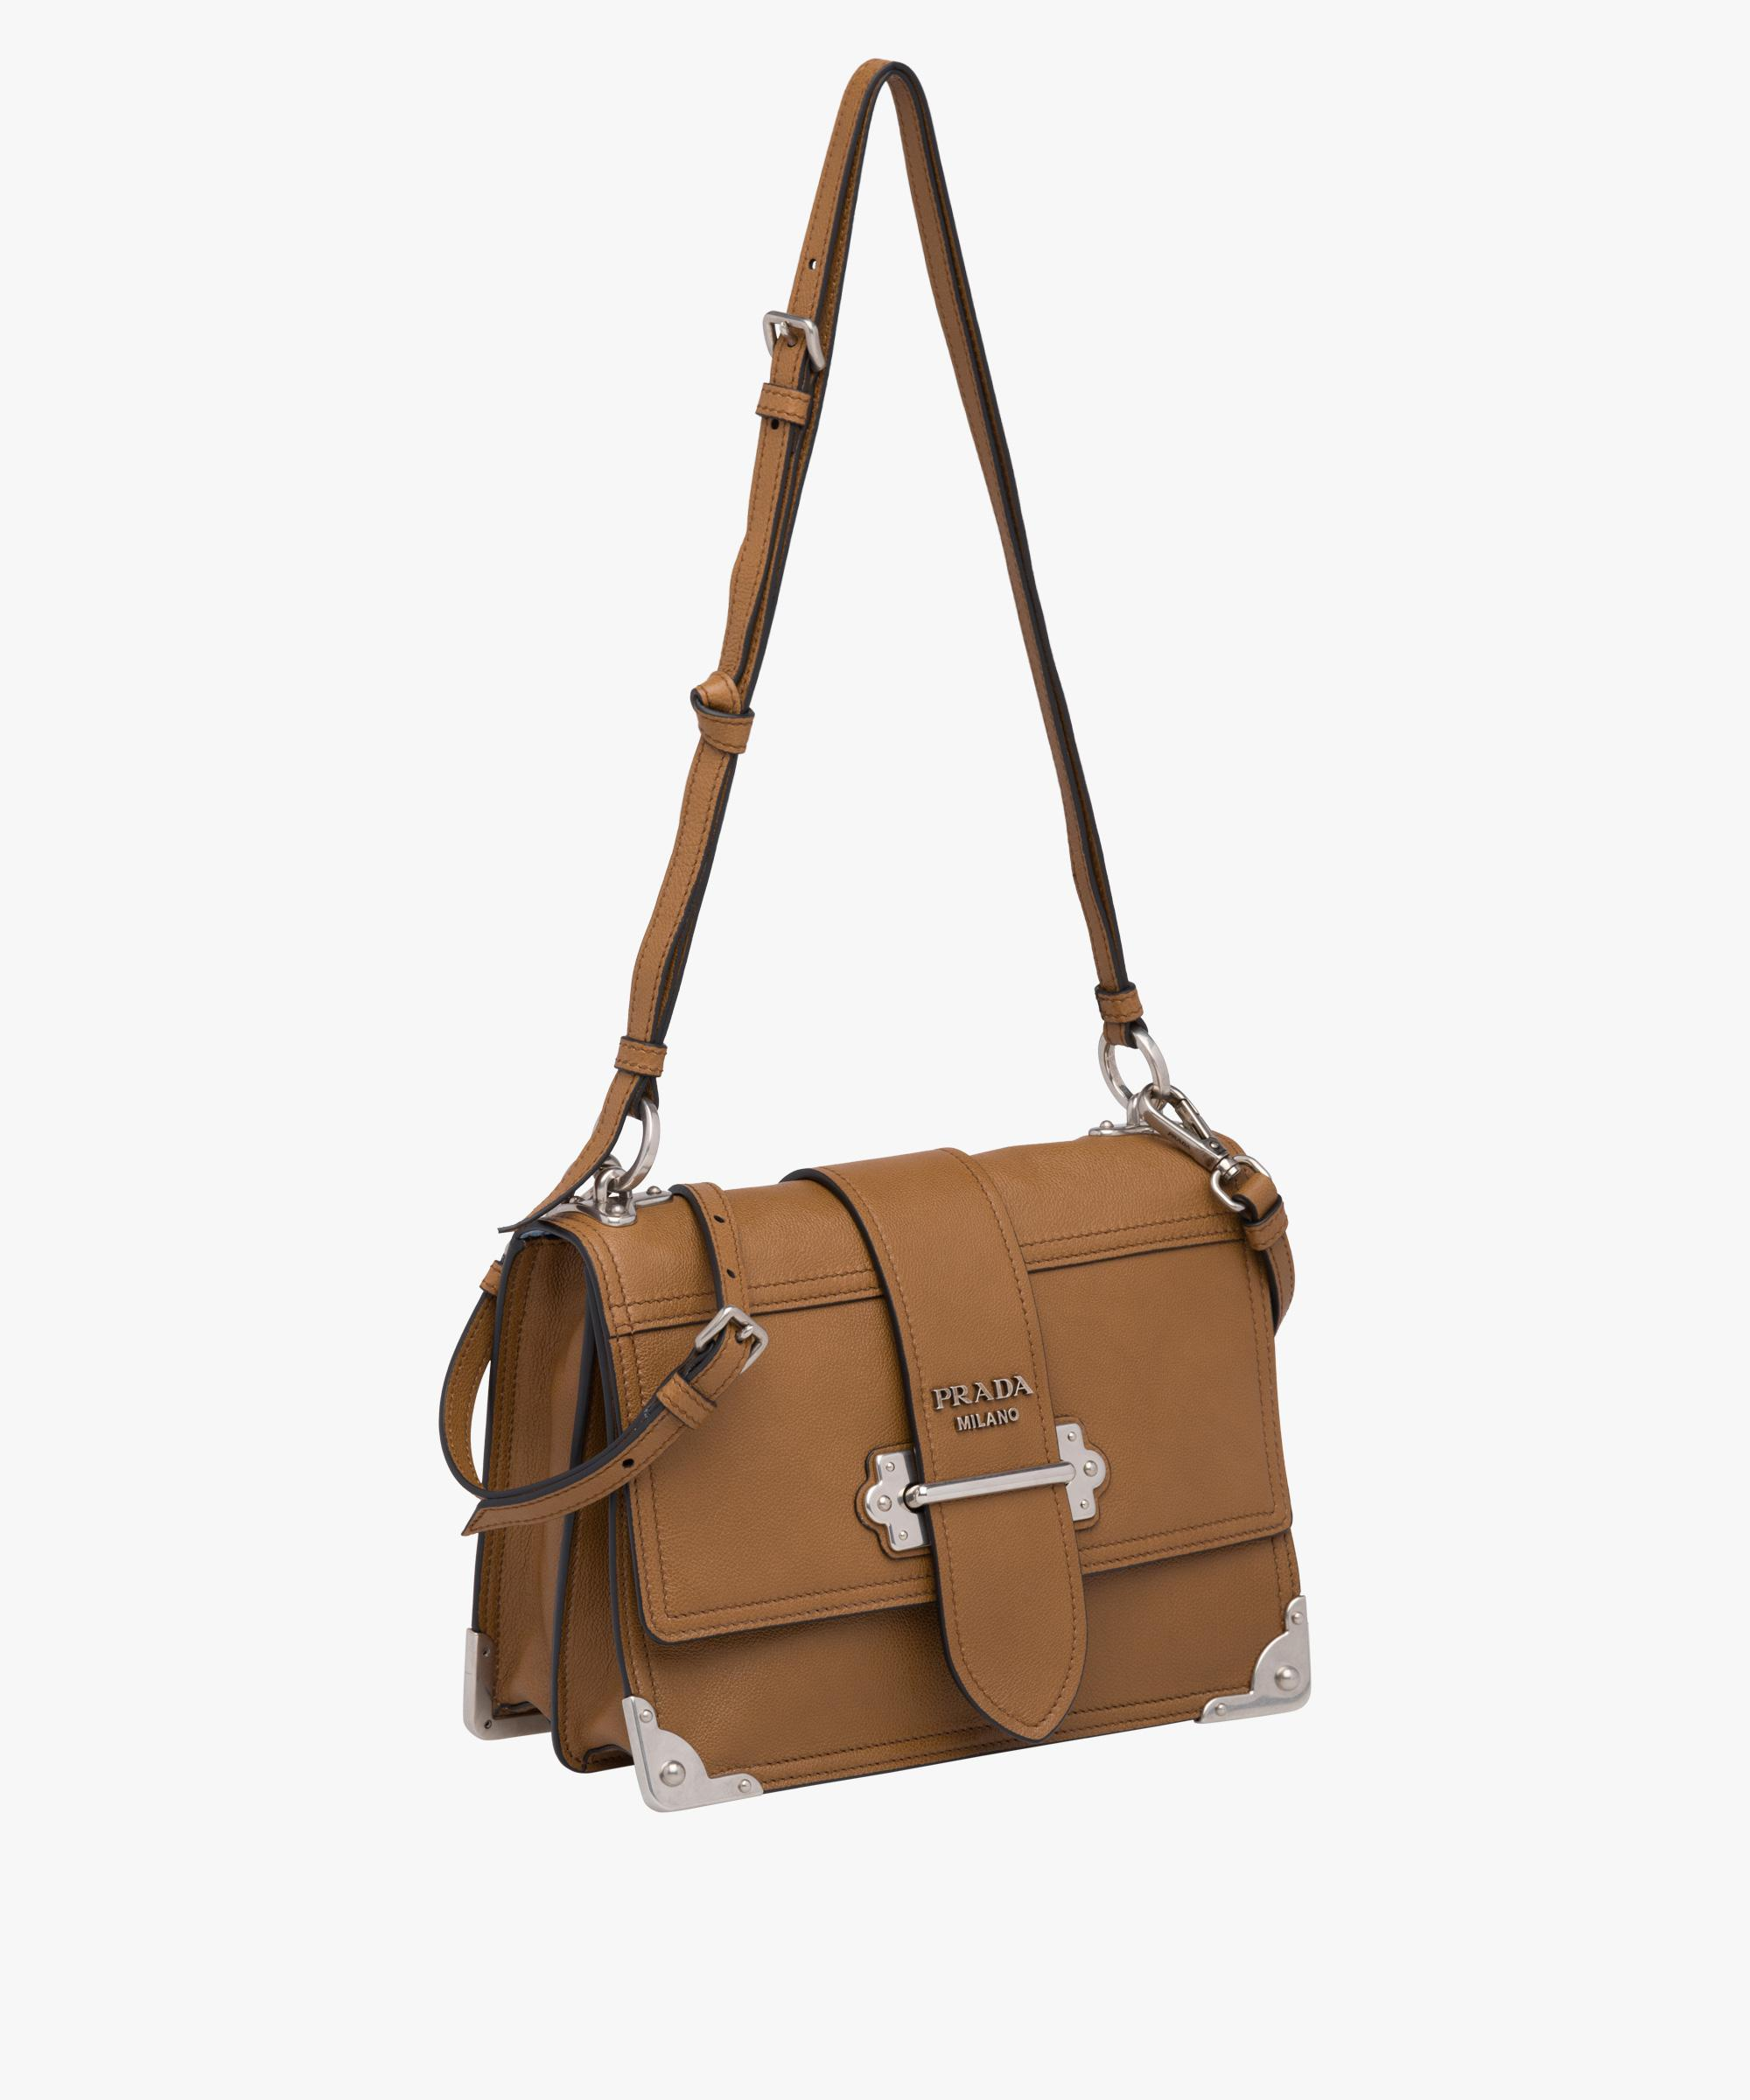 1bc3387785e7 ... uk lyst prada cahier leather shoulder bag in brown ac777 a82ad